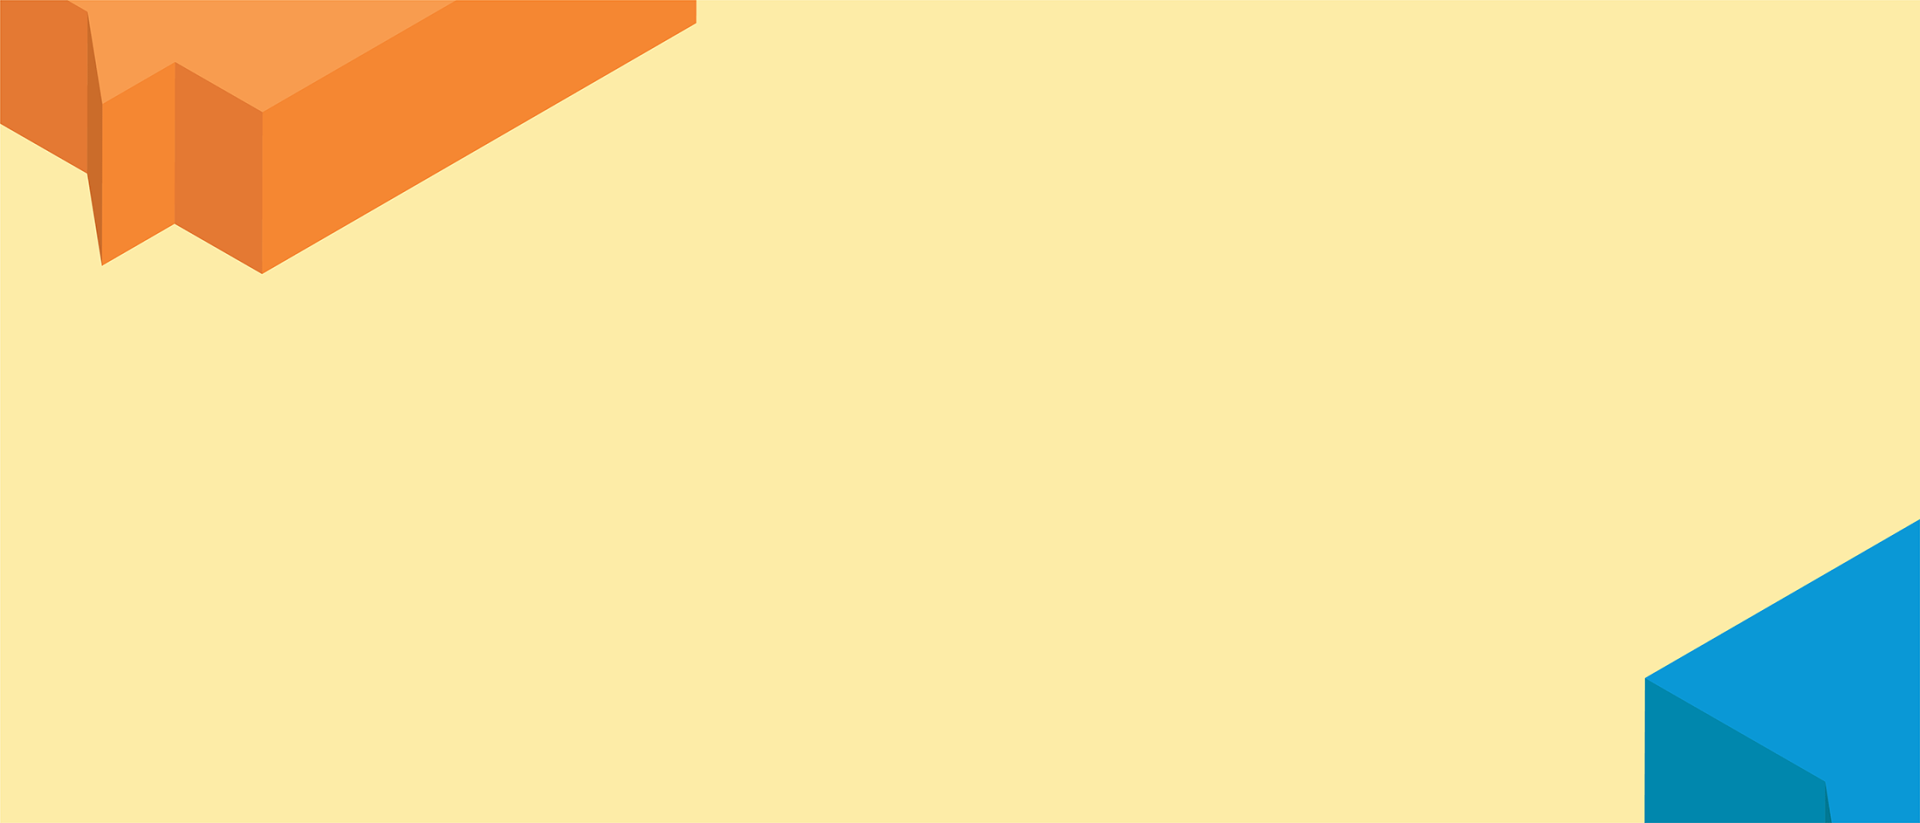 Background graphic with floating boxes